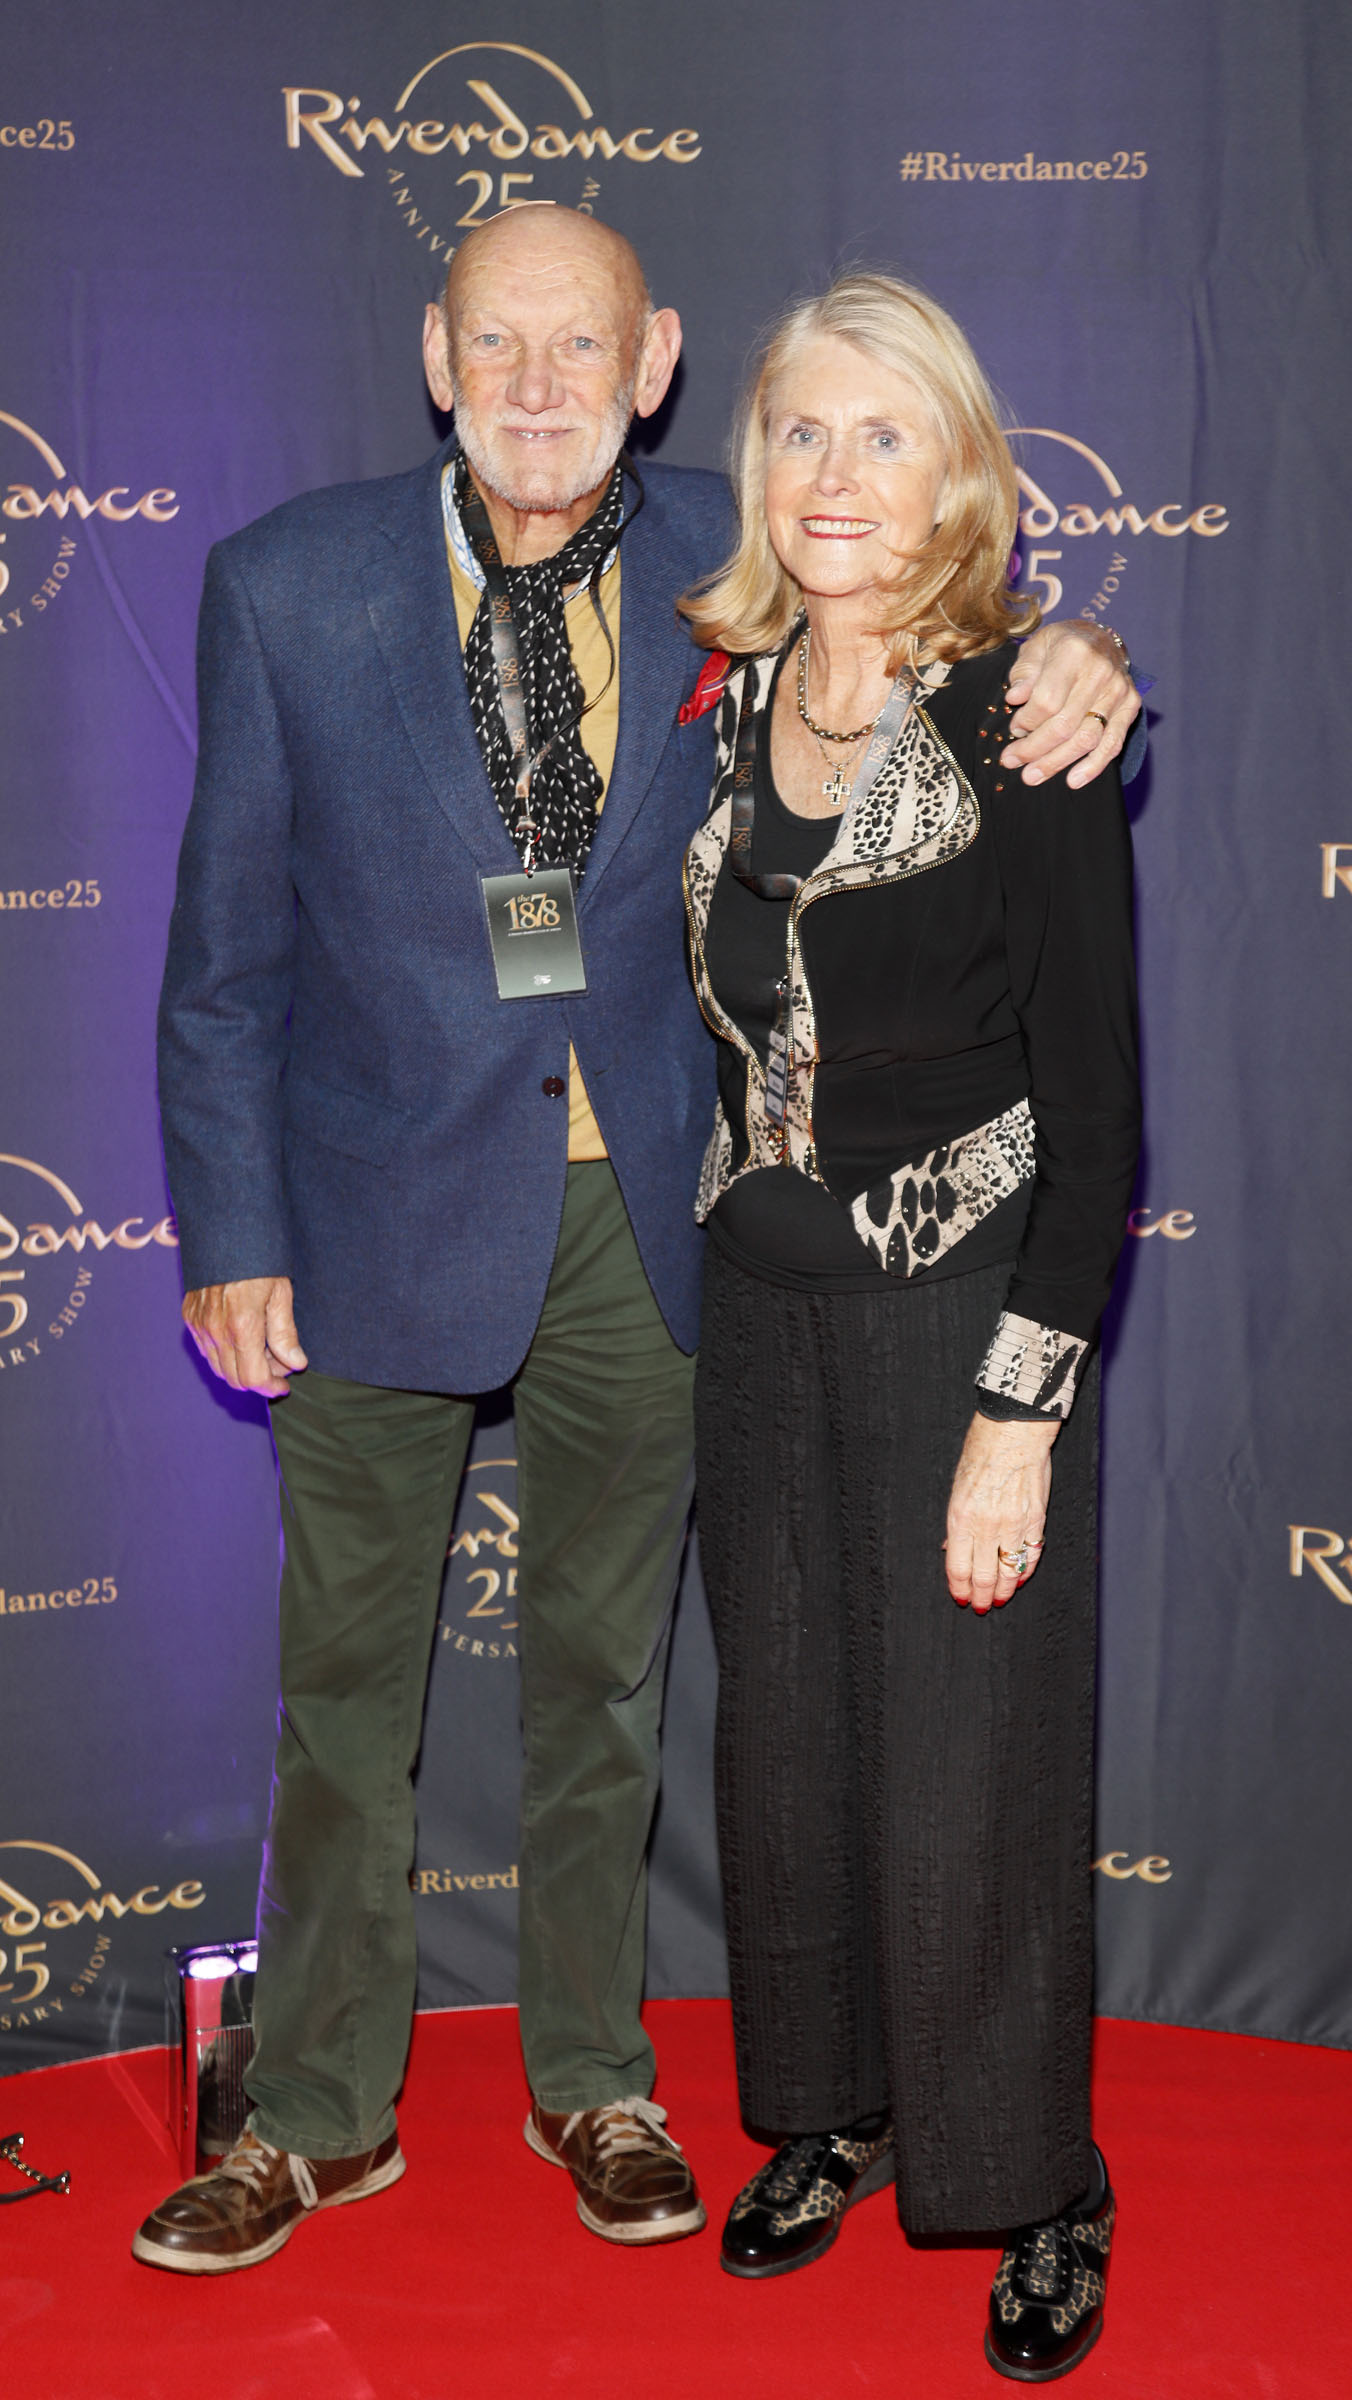 Helen and Paddy Cole at the historic gala performance of Riverdance 25th Anniversary show at 3Arena Dublin exactly 25 years to the day that Riverdance was first performed at the Point Depot.  Photo: Kieran Harnett